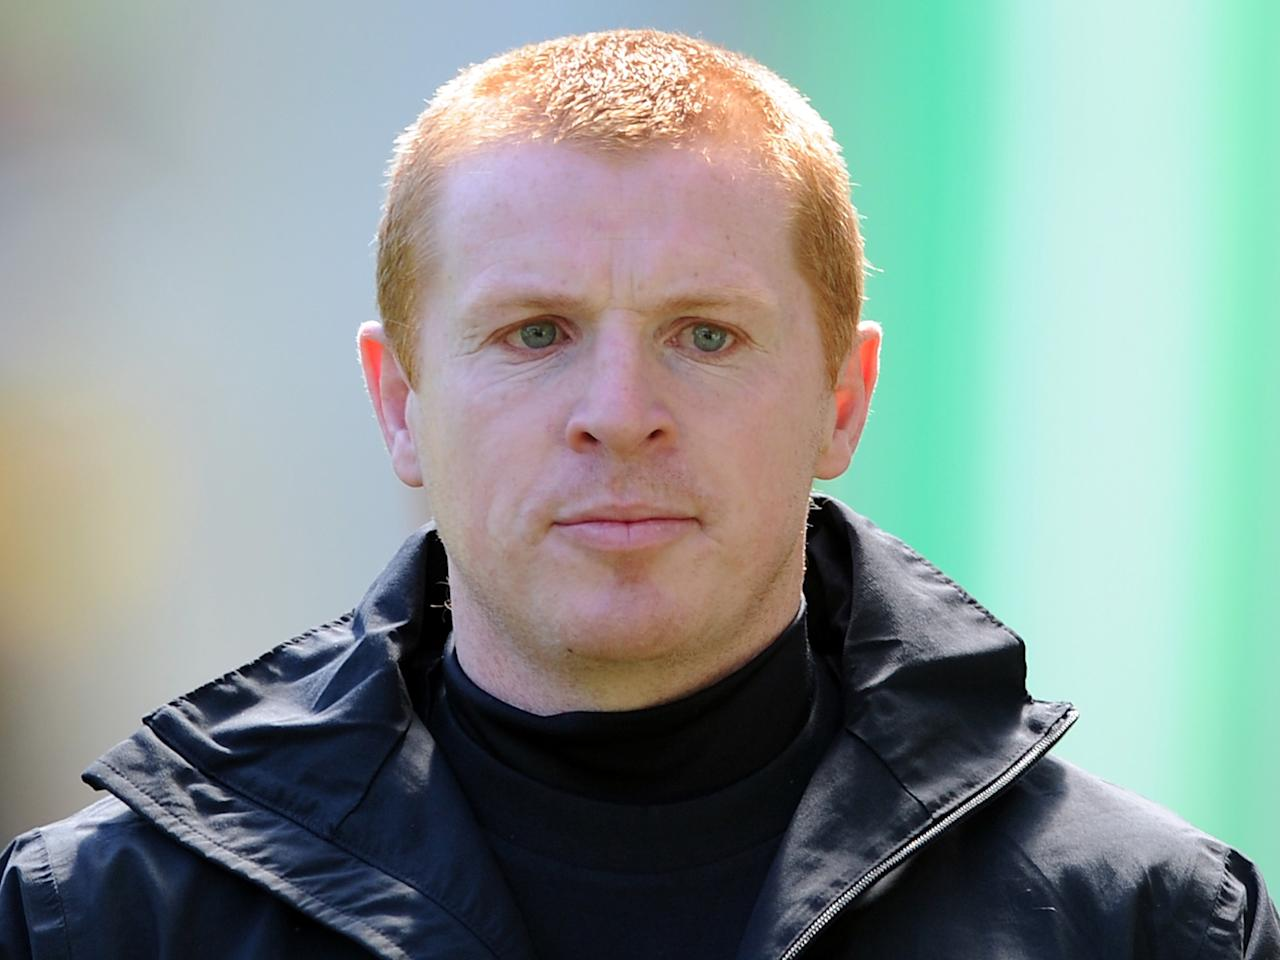 Neil Lennon reveals he suffered from depression during Hibernian's run to the Scottish Championship title